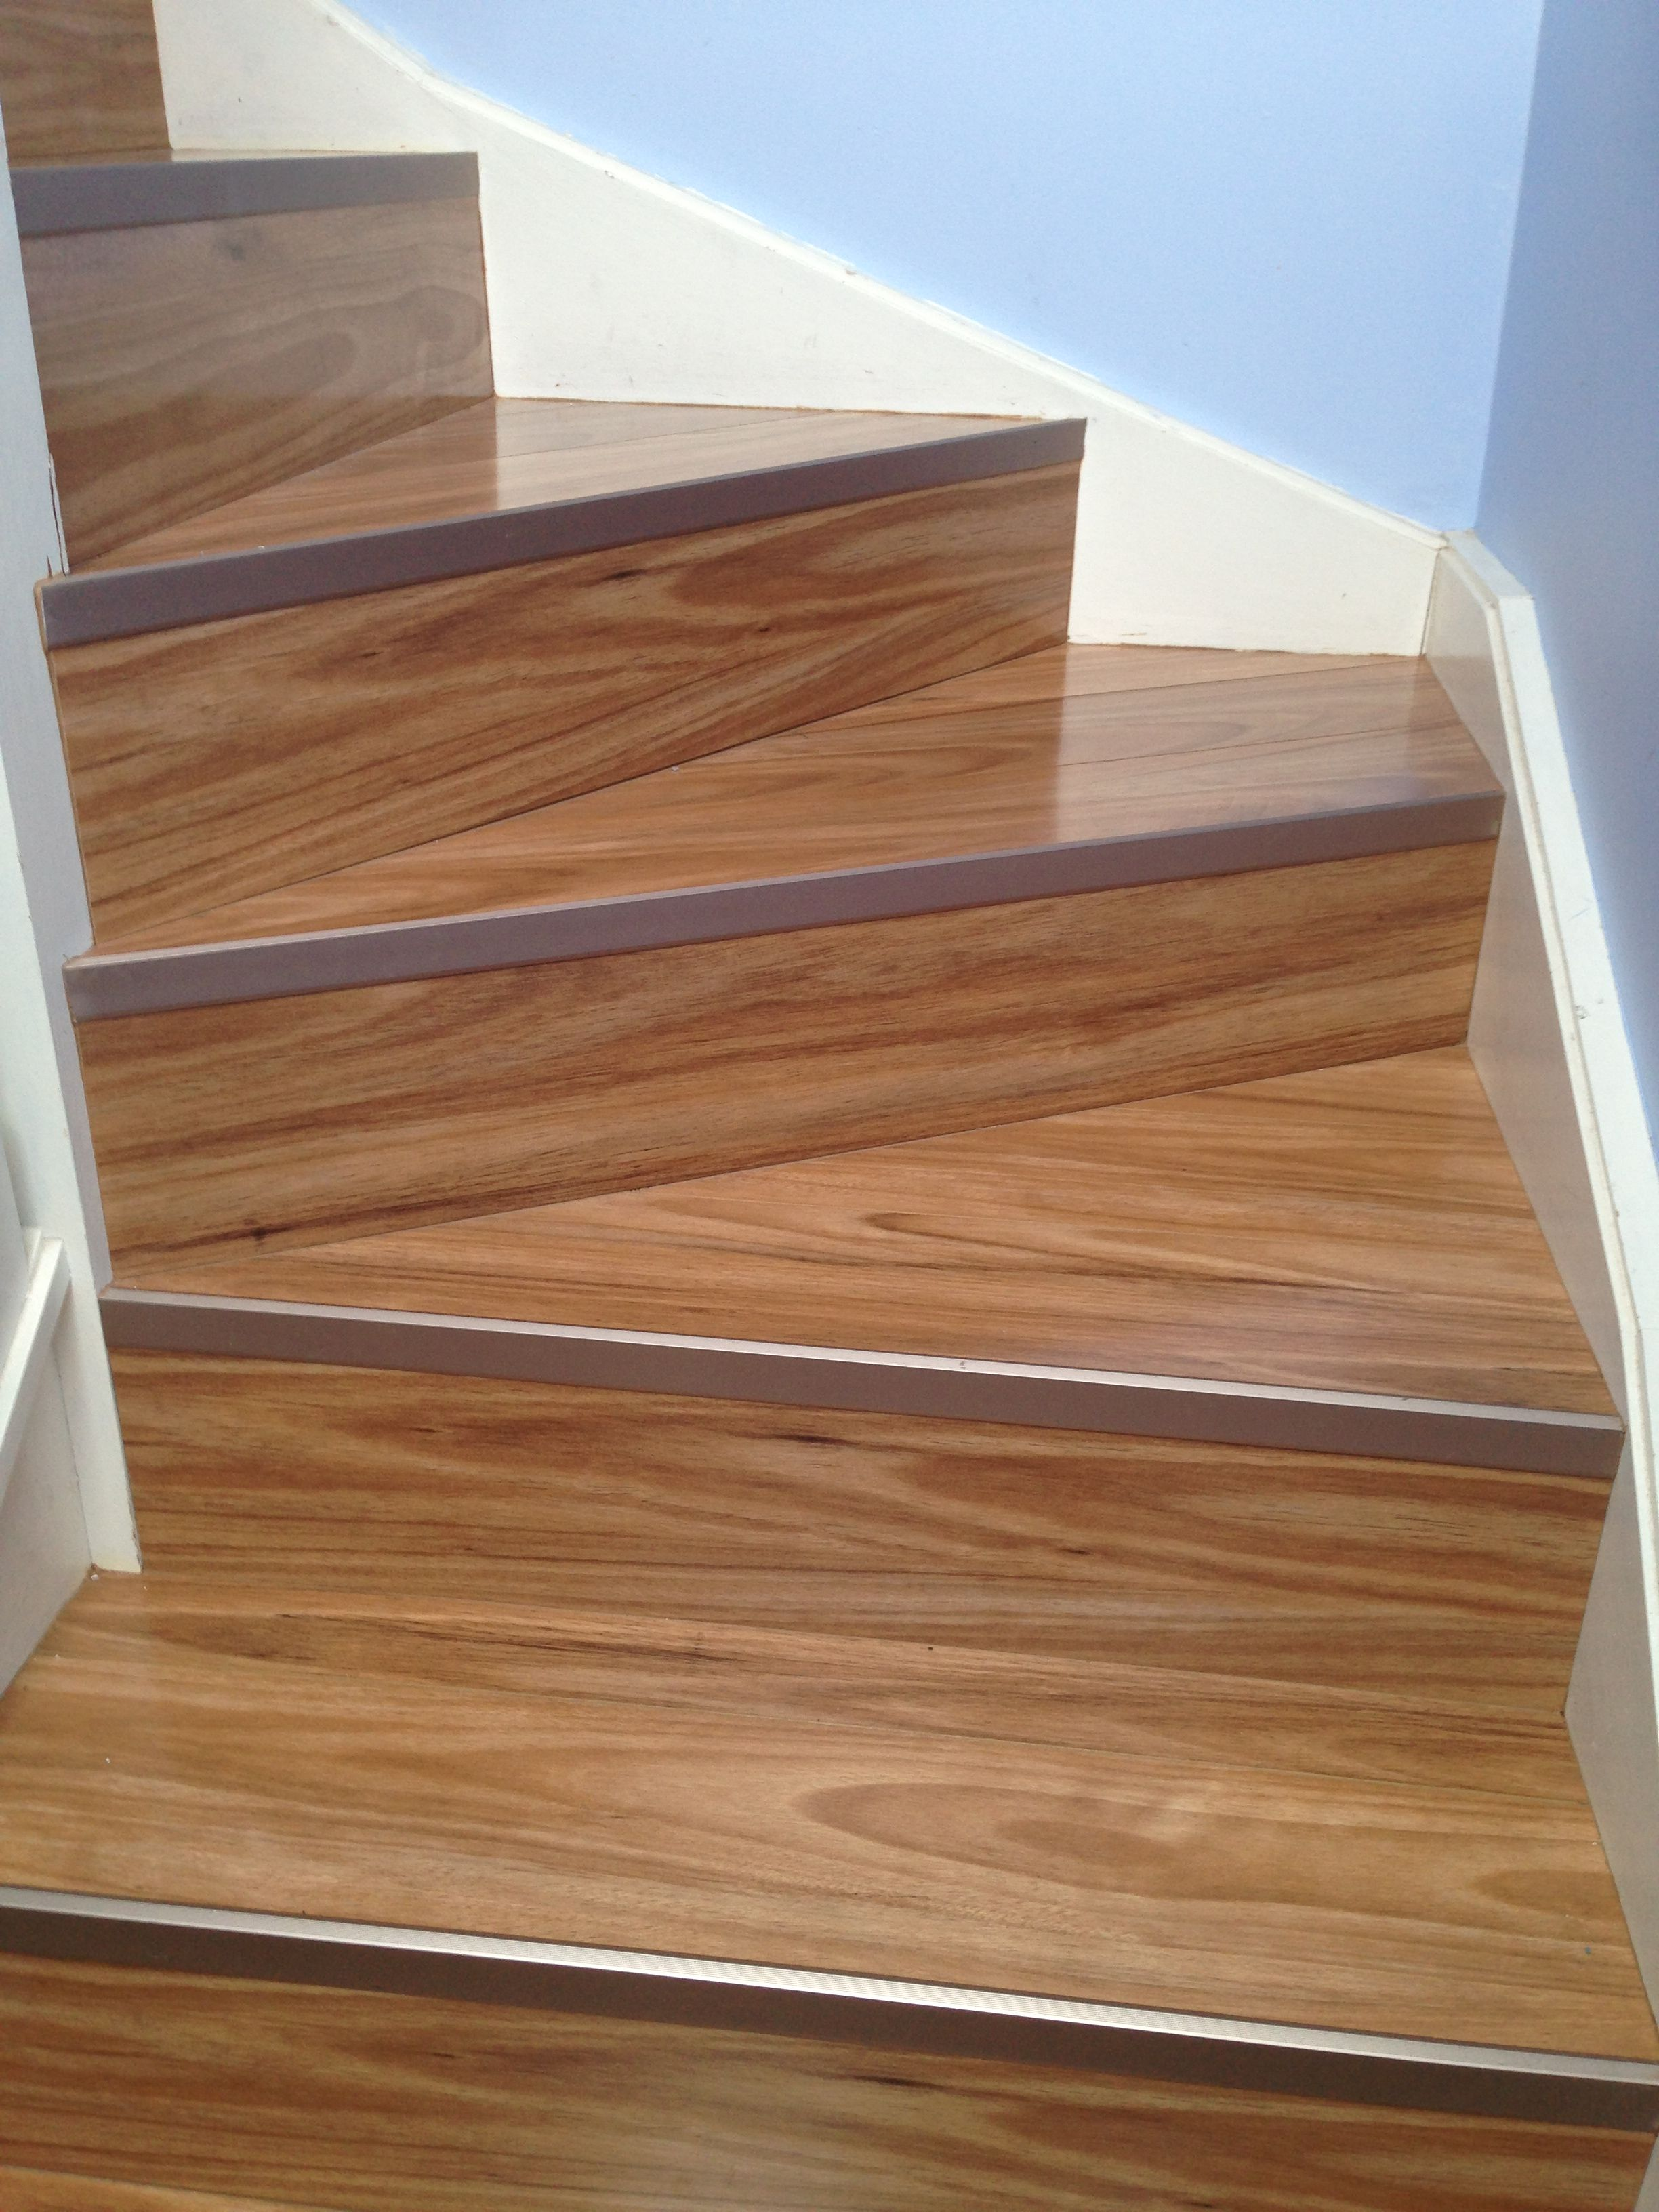 slippery for cons pros flooring overhang less vs wooden to ideas disadvantages how landing and laminate size floor full carpet beatiful of make nosing on stairs treads with stair floors